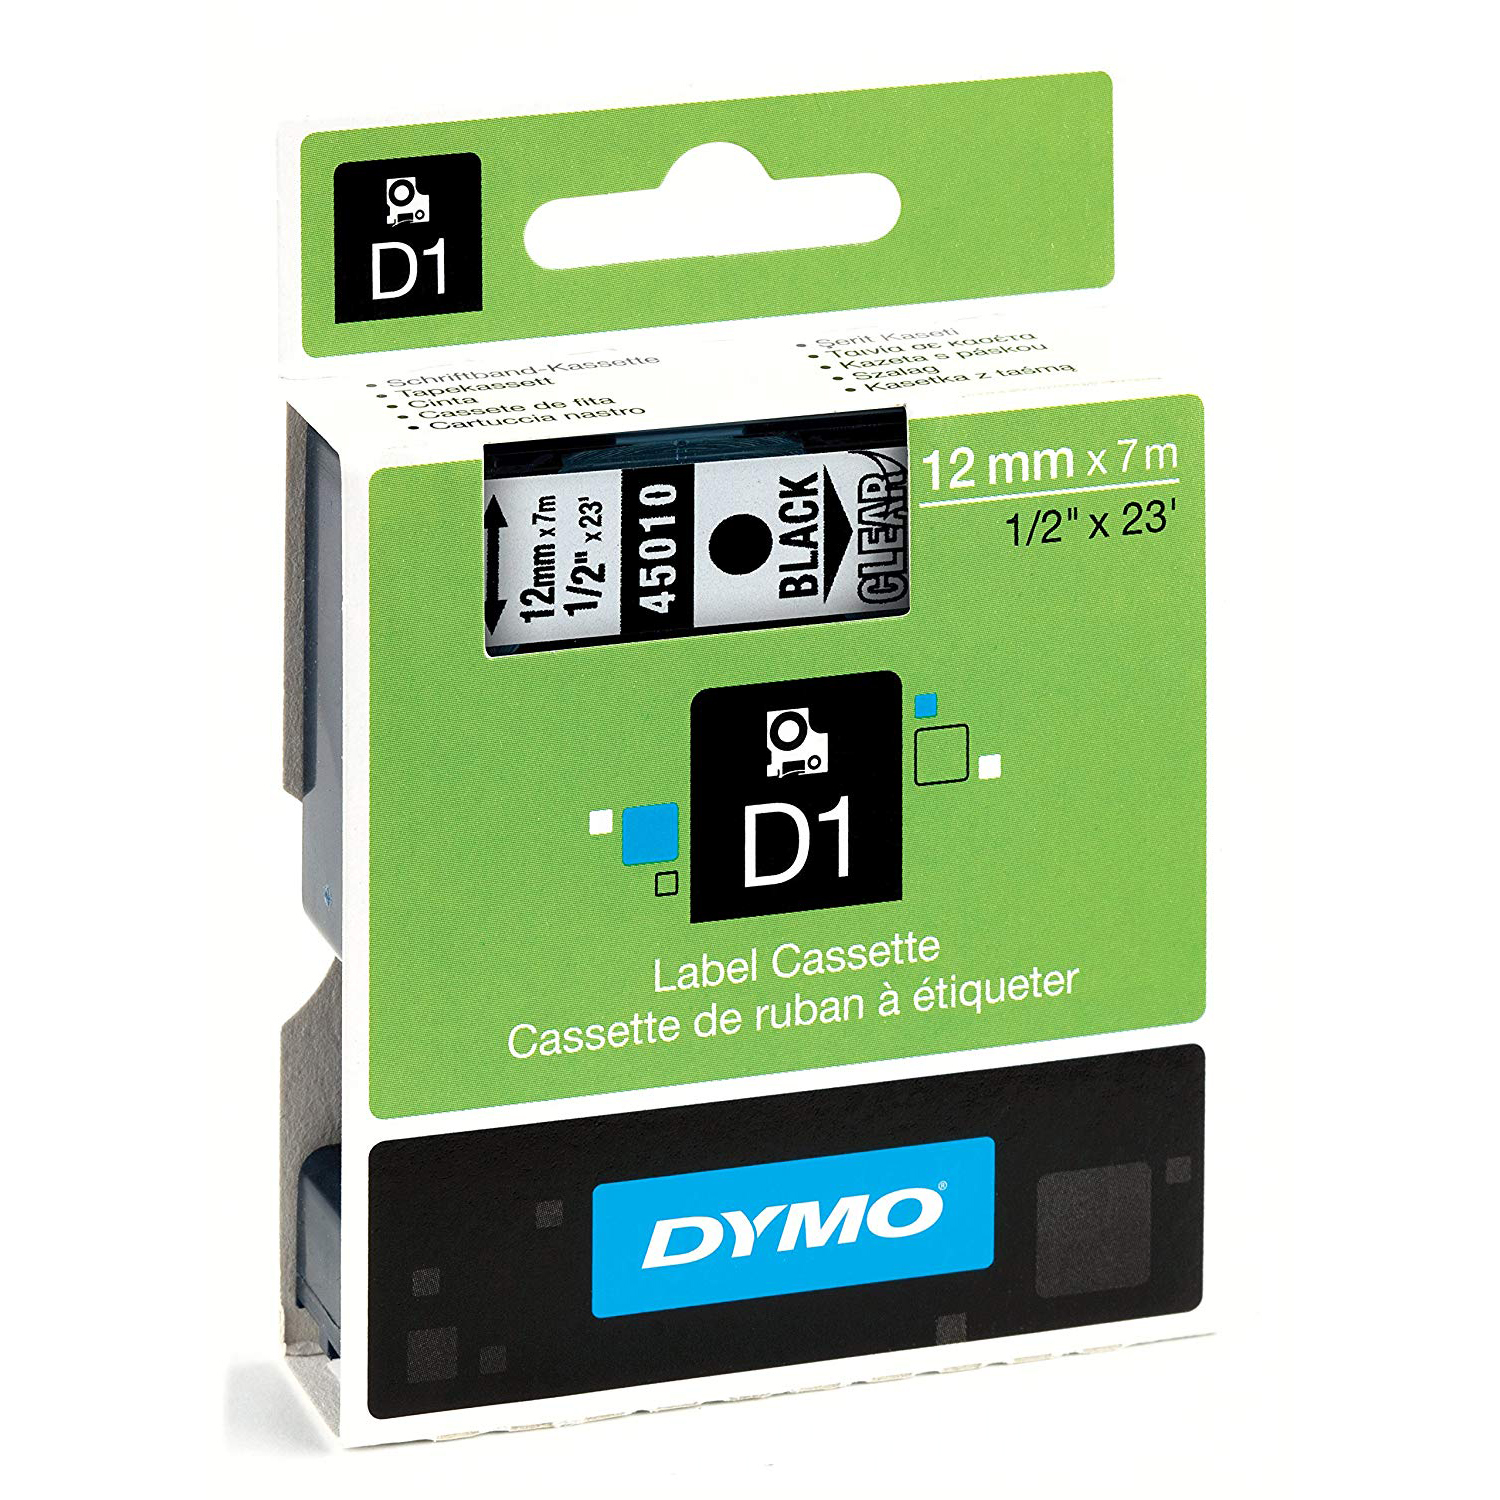 Dymo S0720500 (45010) D1 Standard Label Tape 12mm x 7m - Black on Transparent (pc)